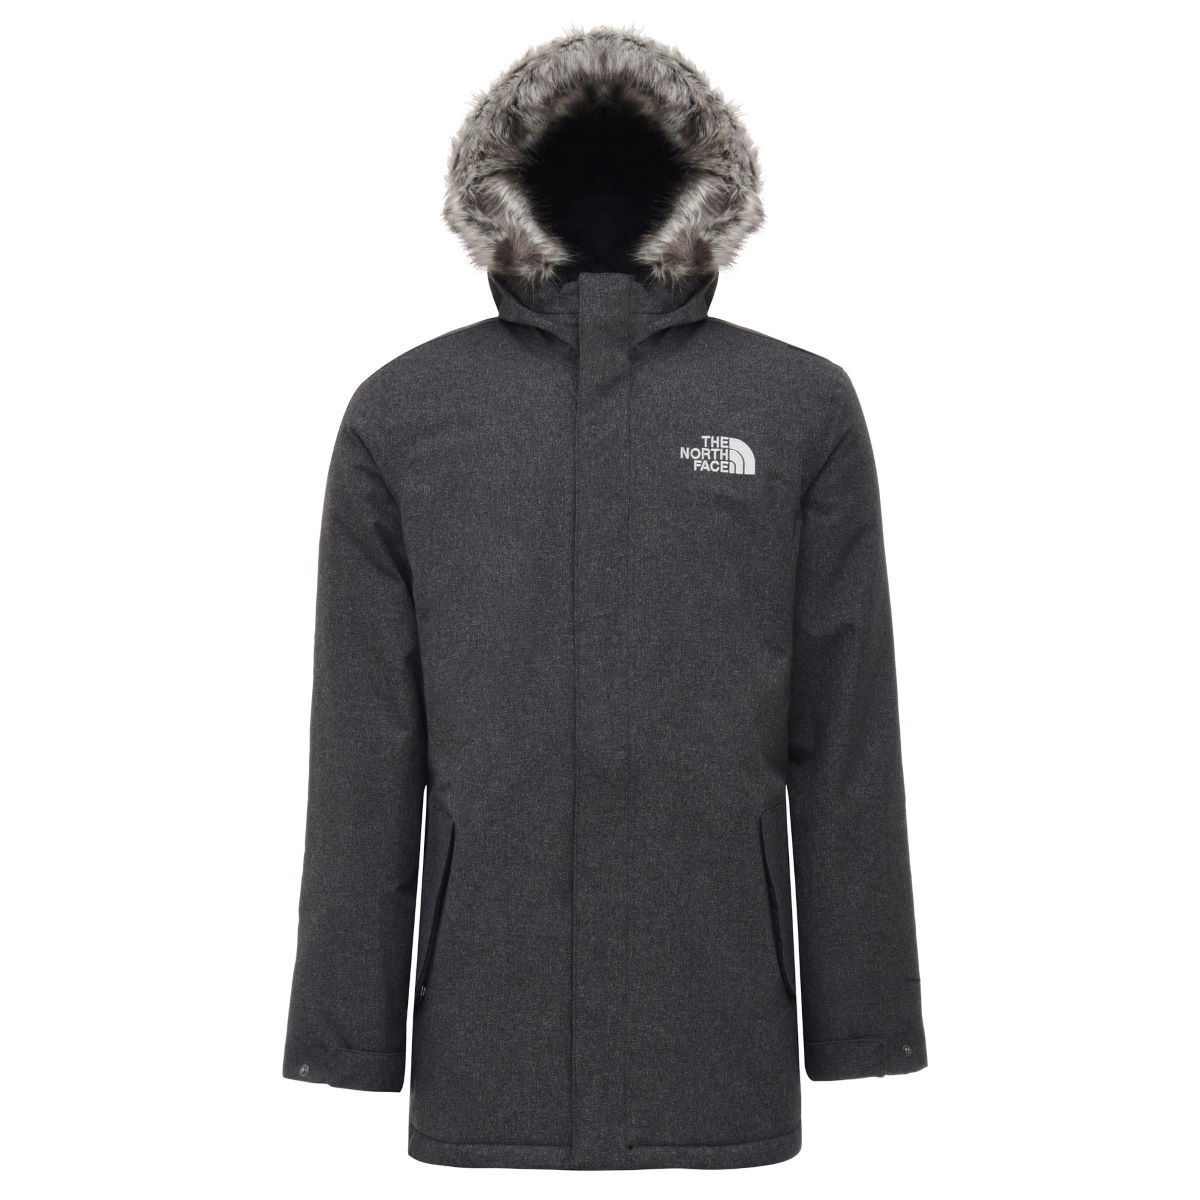 The North Face The North Face Zaneck Jacket   Jackets